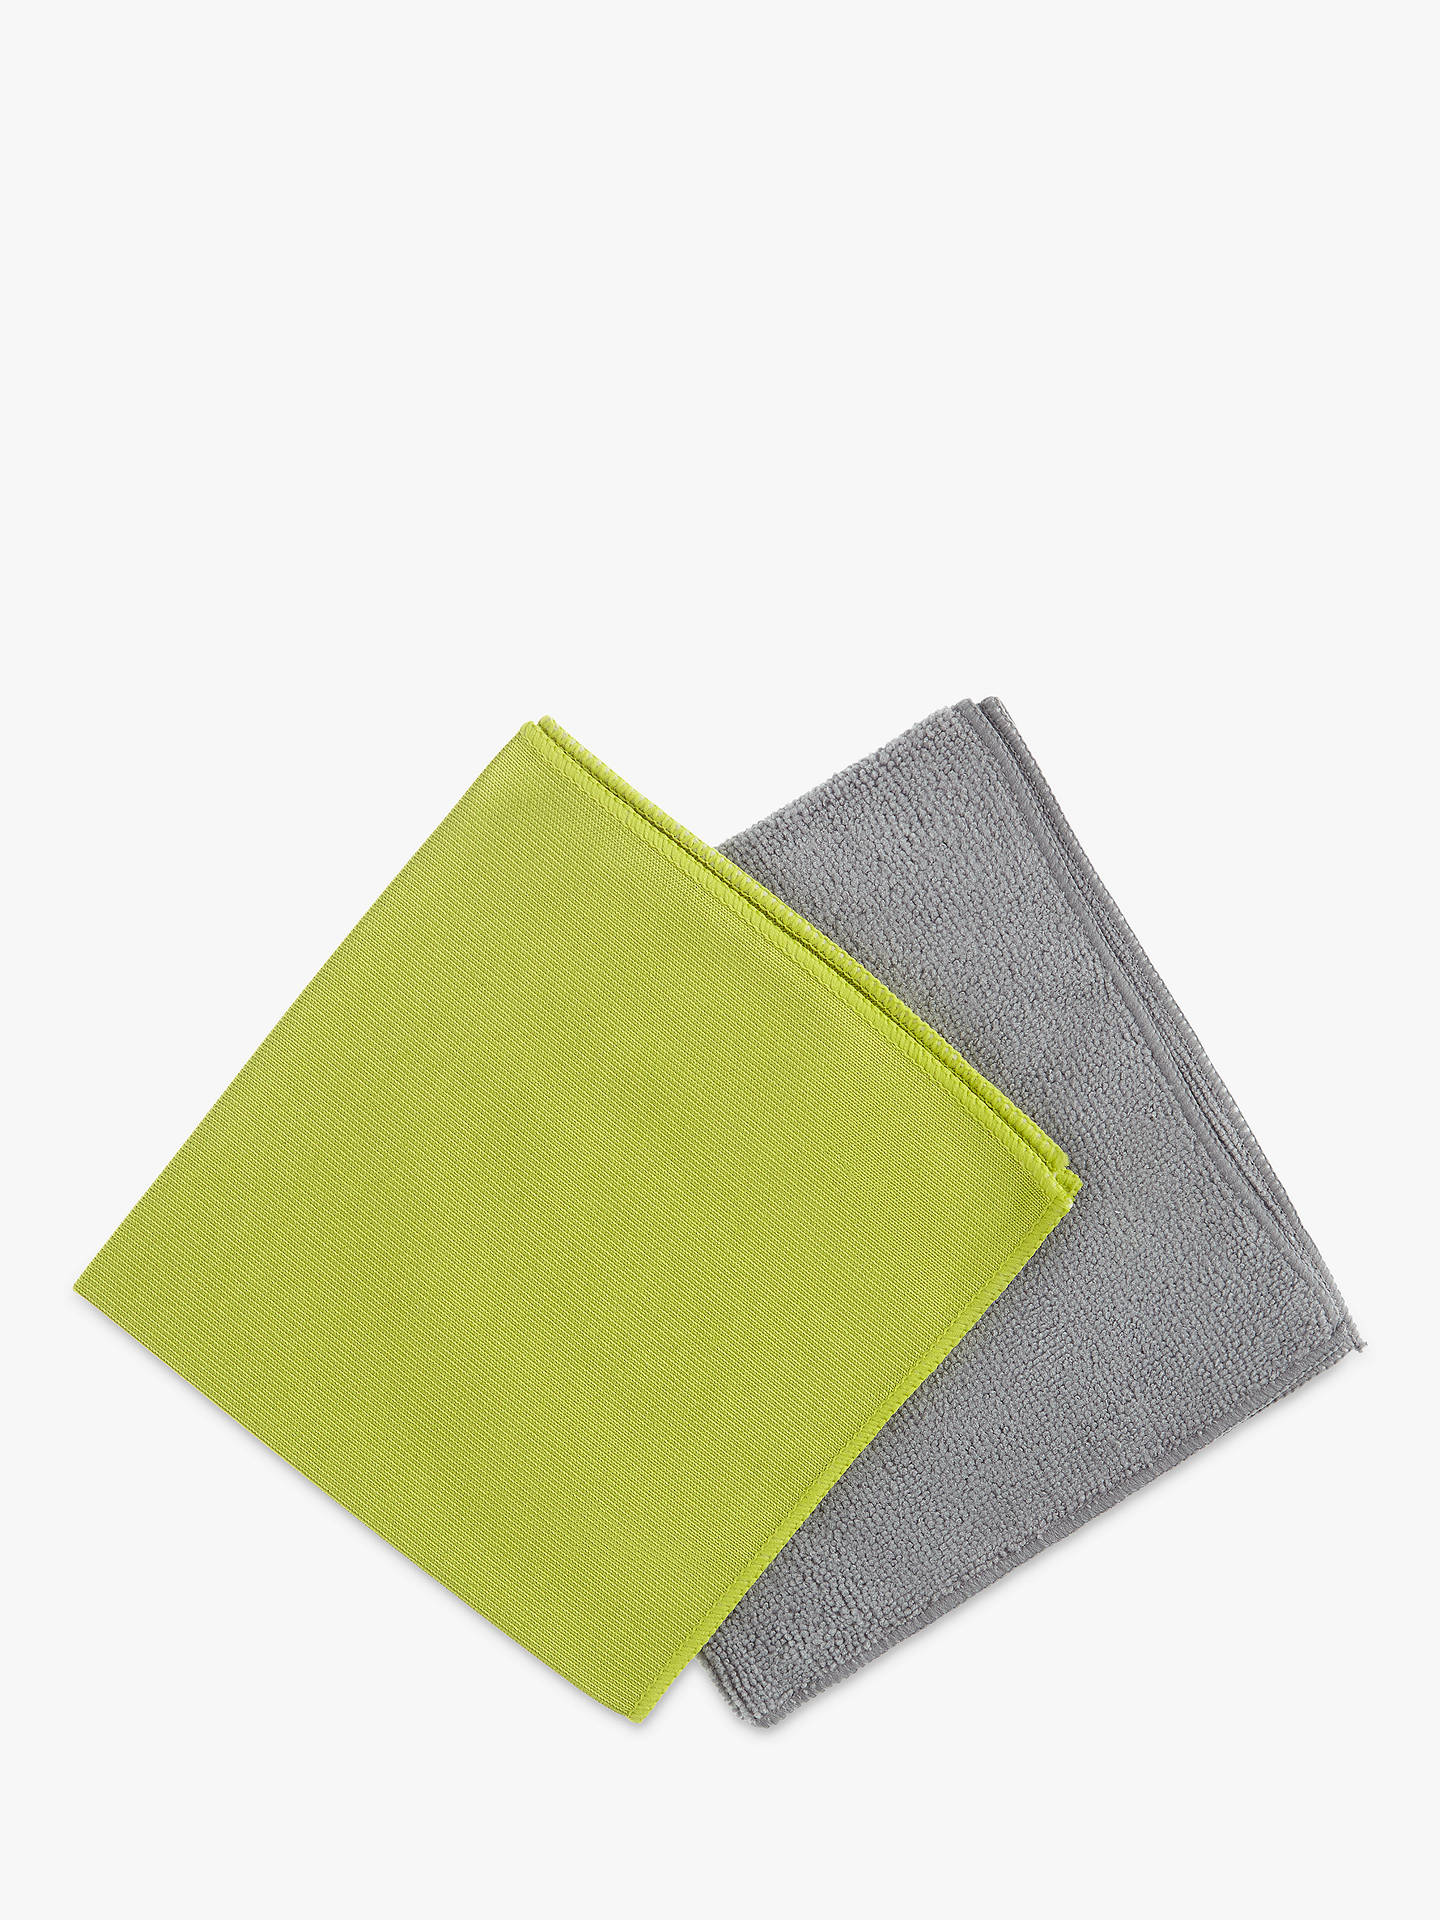 John lewis partners ingenious window cleaning cloth at - Best cloth for cleaning windows ...